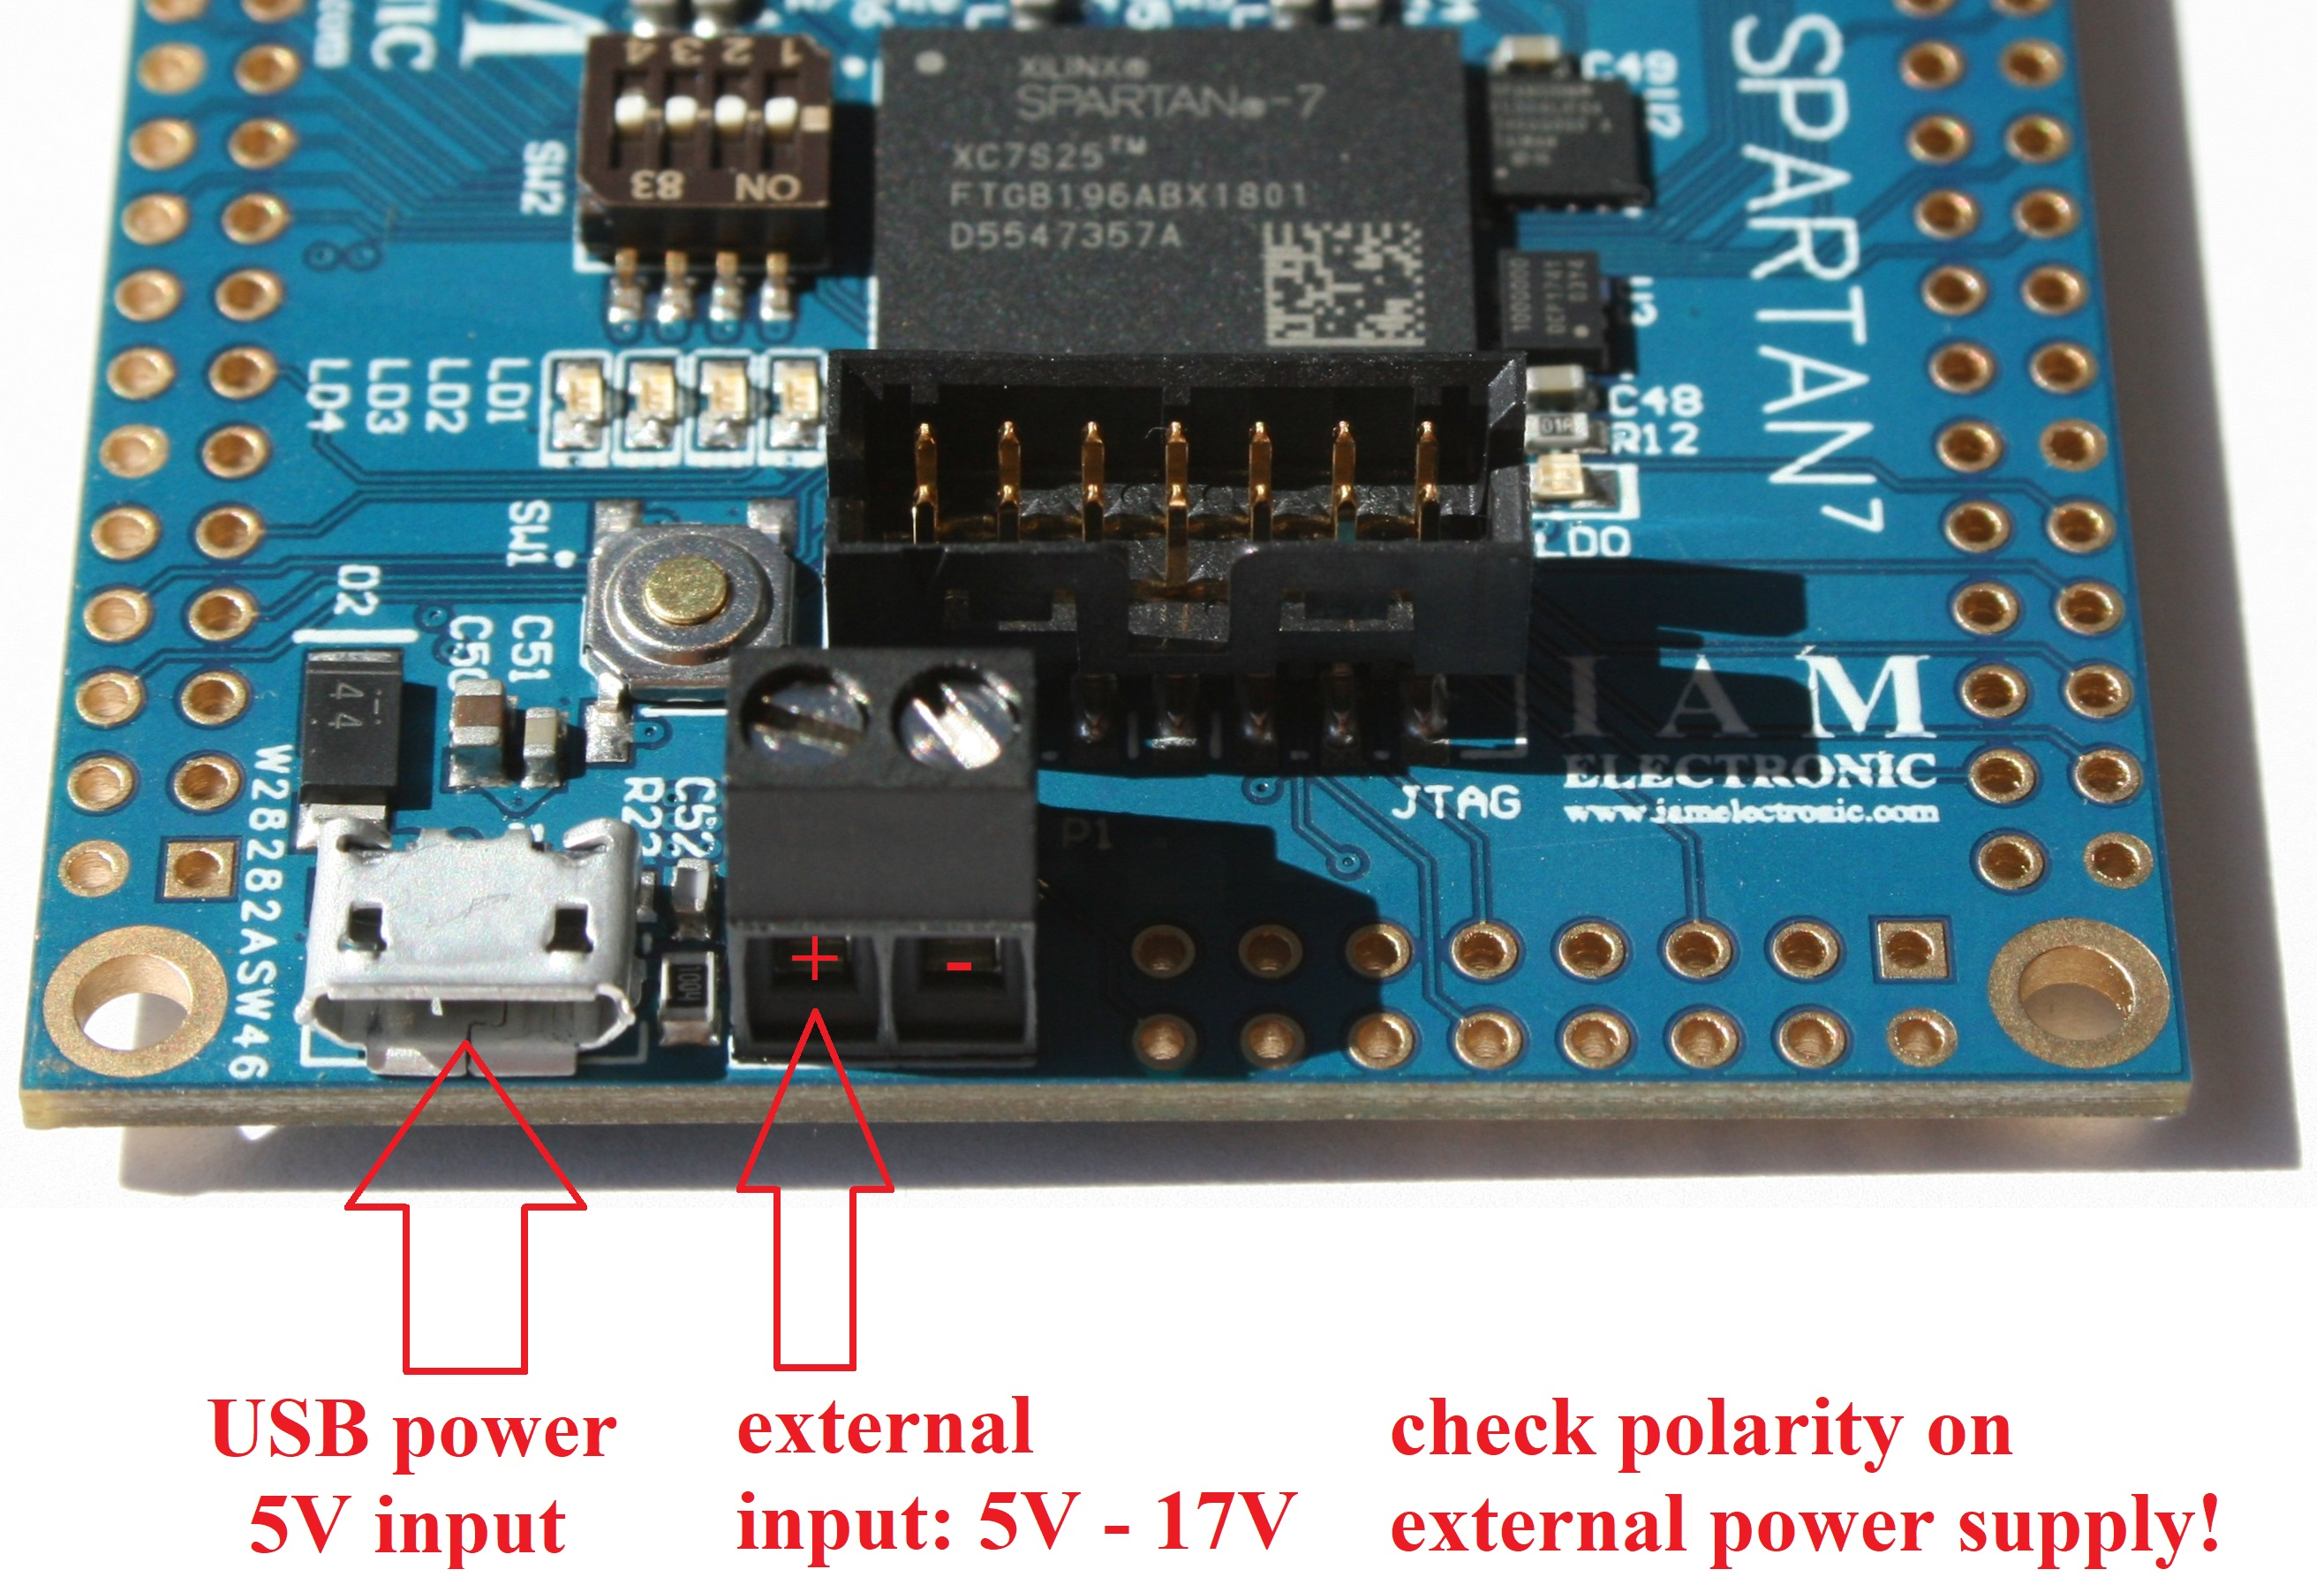 Fpga Board With Xilinx Spartan 7 Usb Power Supply Schematic And Screw Terminal